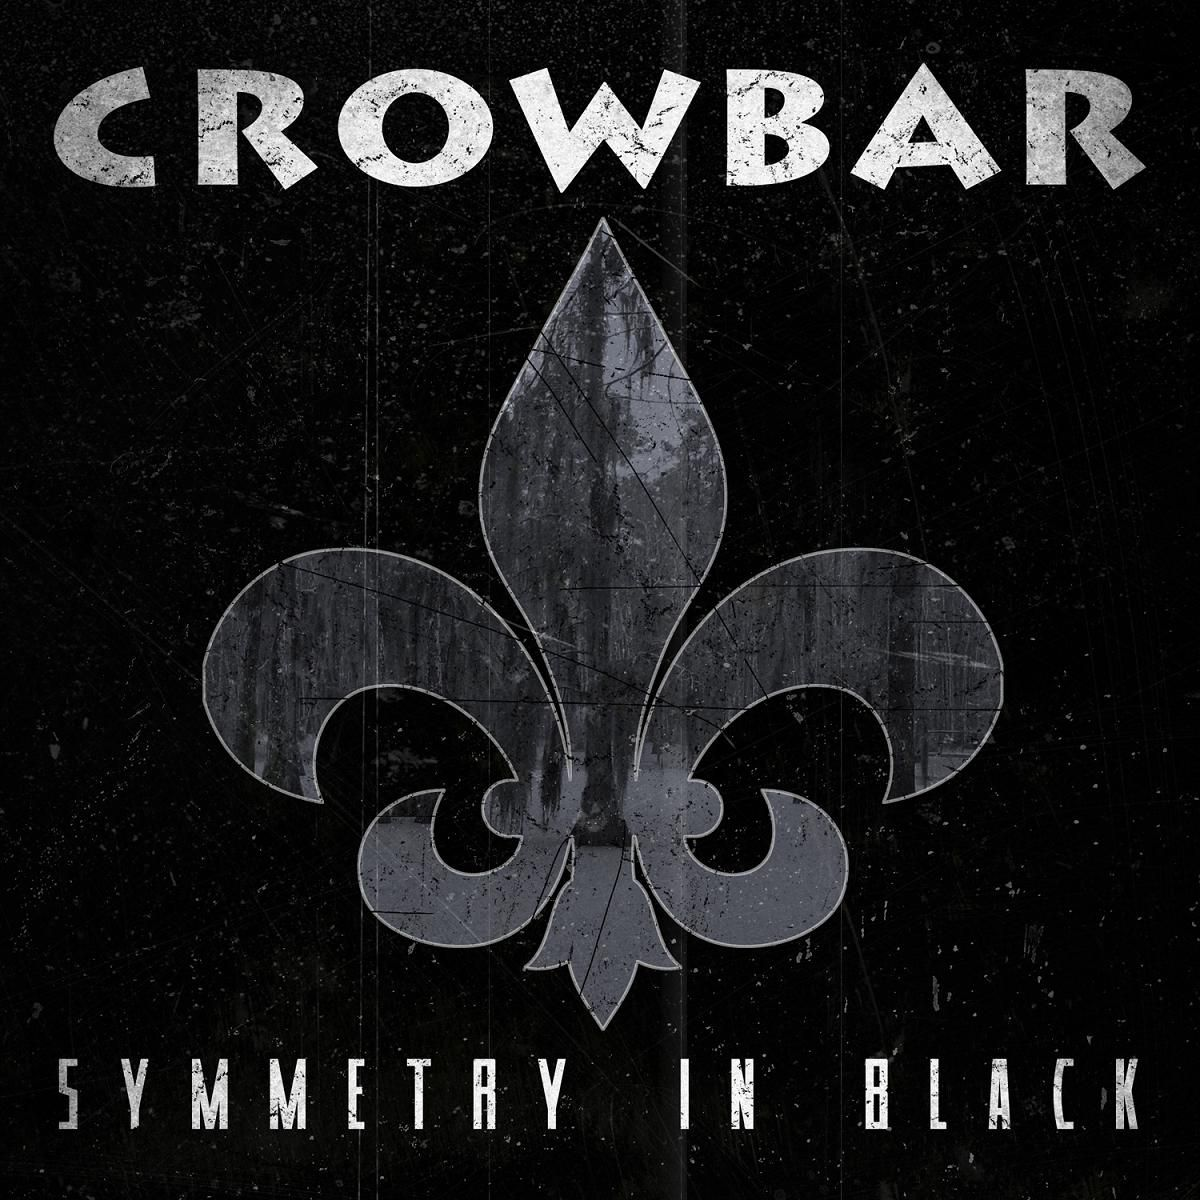 crowbar - symmetry in black